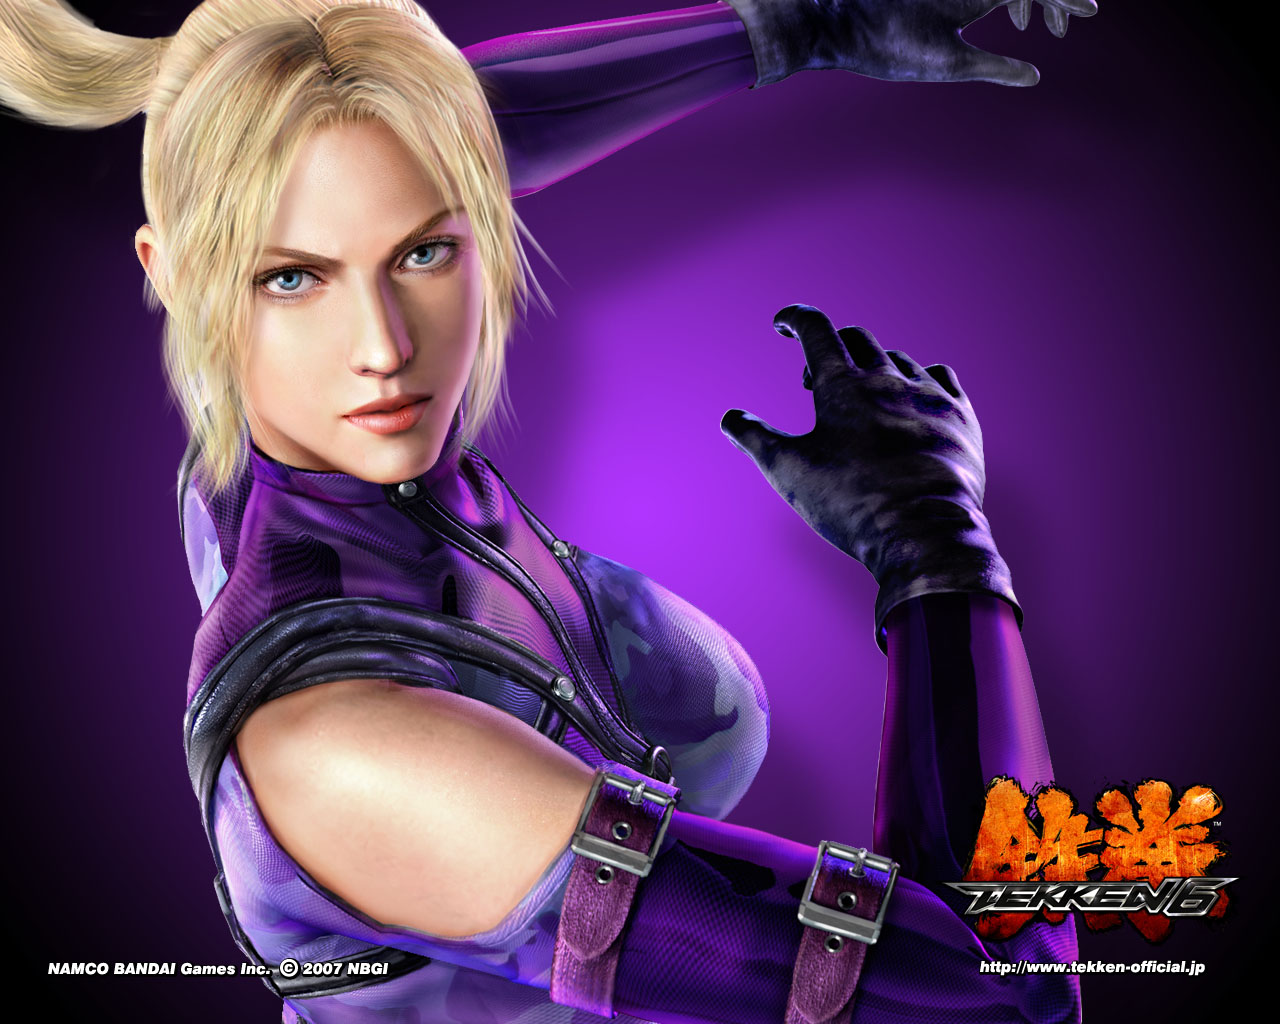 The Female Characters Of Tekken Gaming Technology Onehallyu